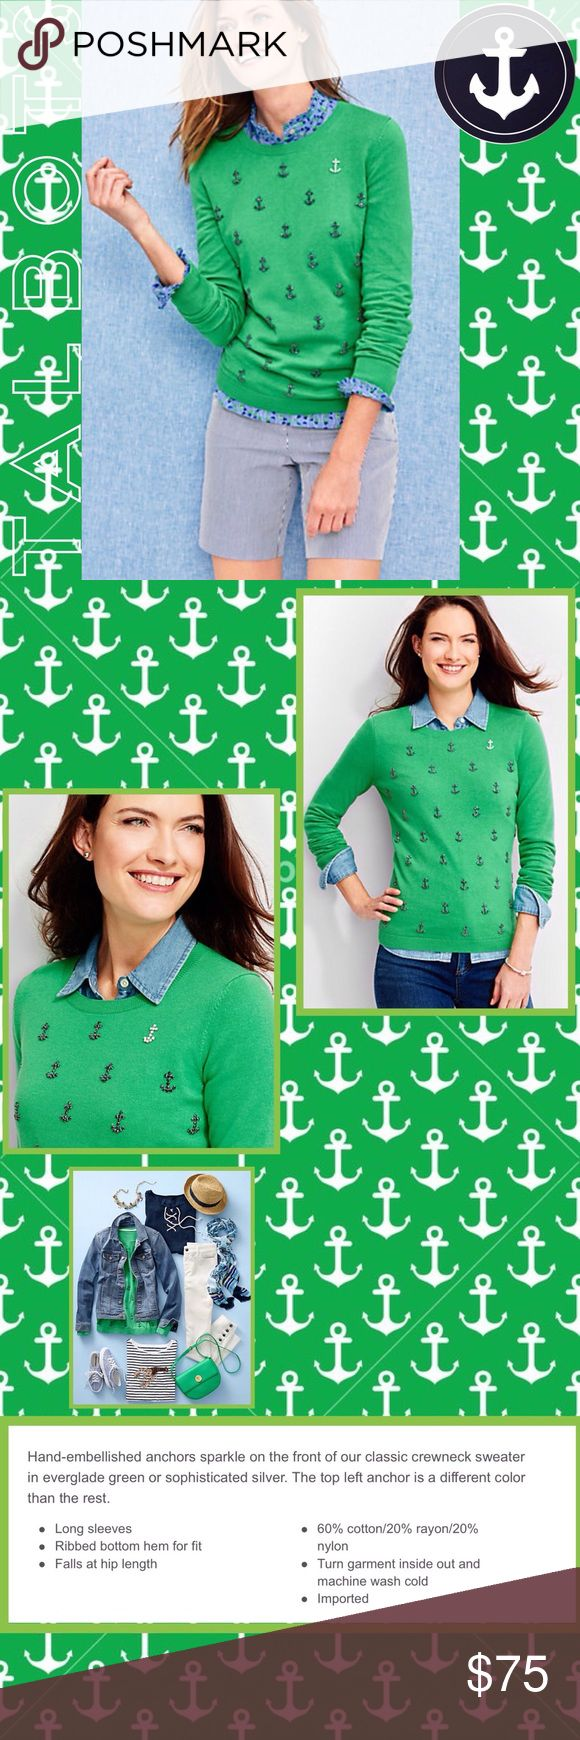 🆕Talbots Rhinestone Anchors Sweater Spring/Summer Sweater in Kelly Green with Black Rhinestone Anchors. Talbots Sweaters Crew & Scoop Necks